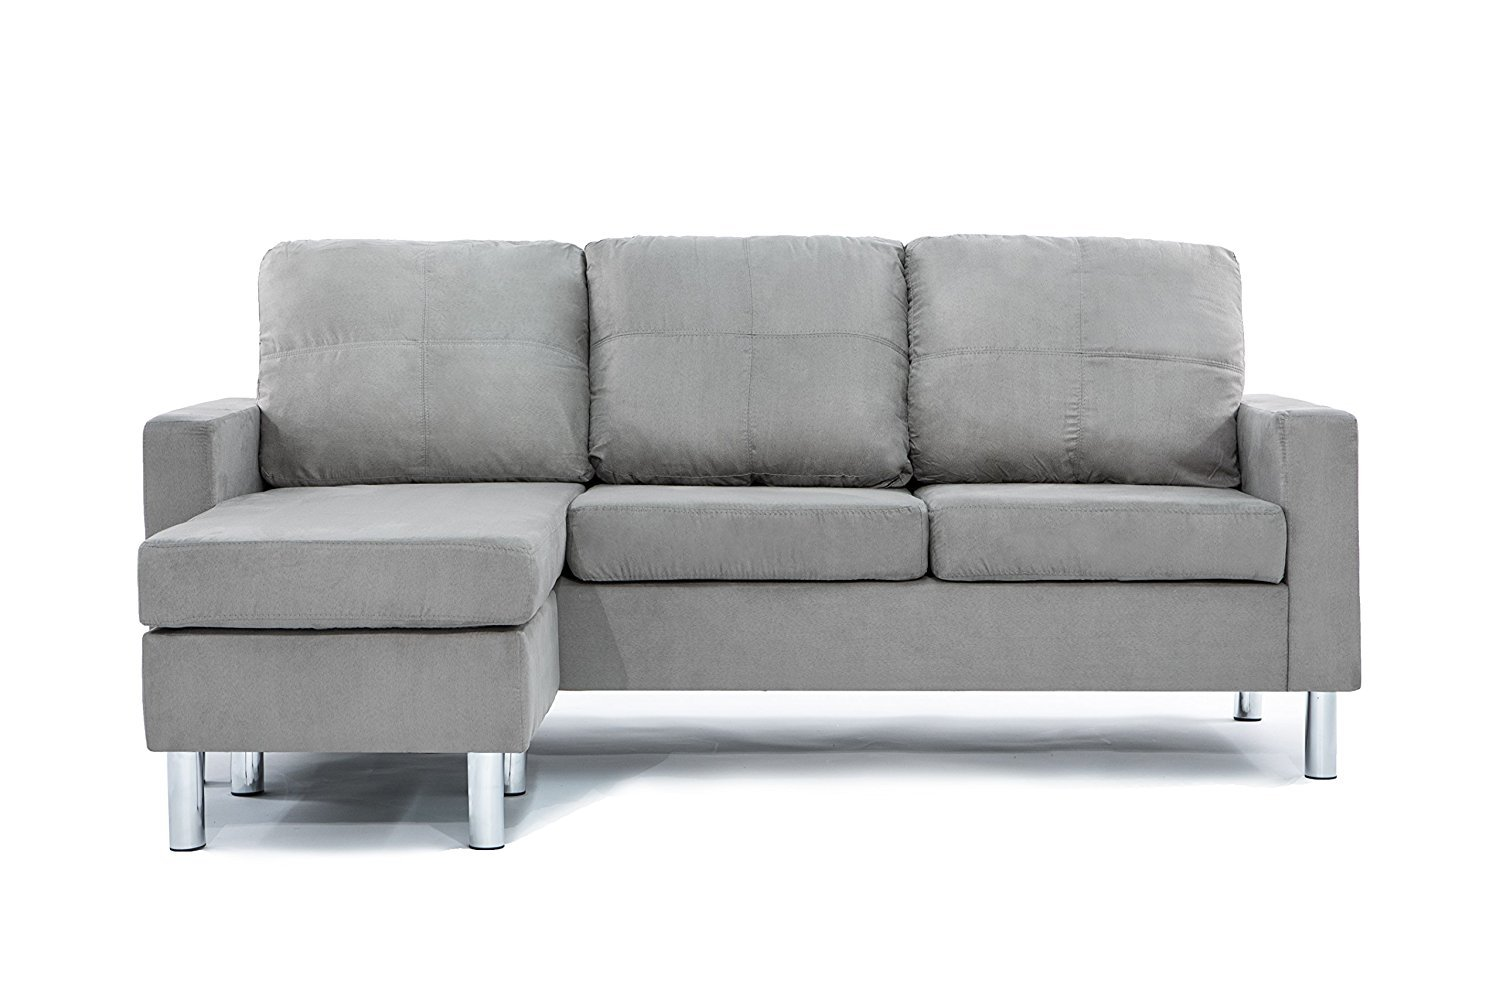 Details about Modern Microfiber Sectional Sofa - Small Space Configurable  (Grey)